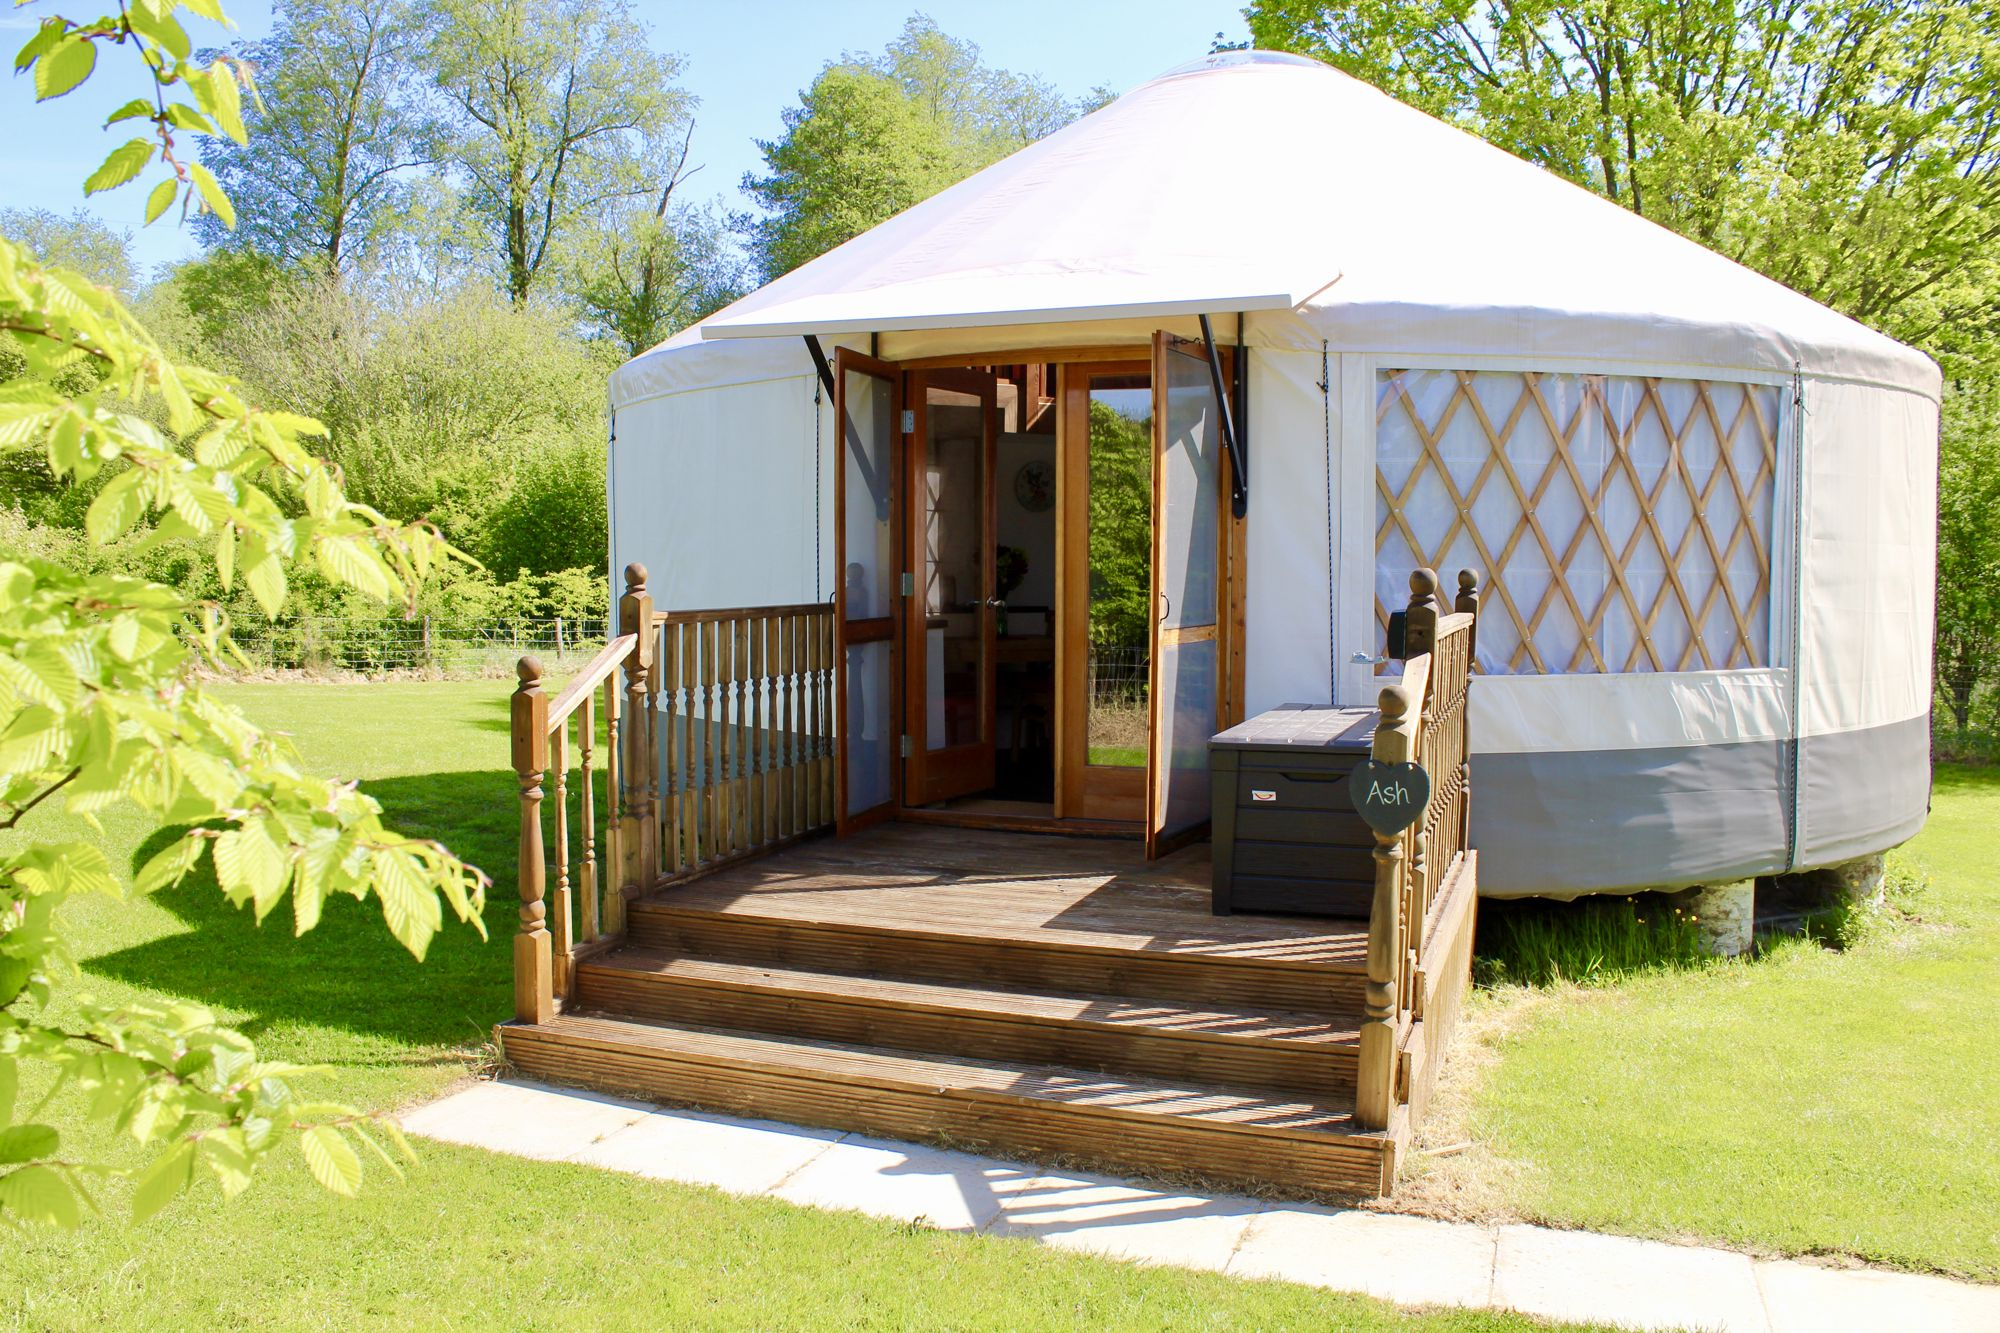 Campsites in Uckfield holidays at I Love This Campsite